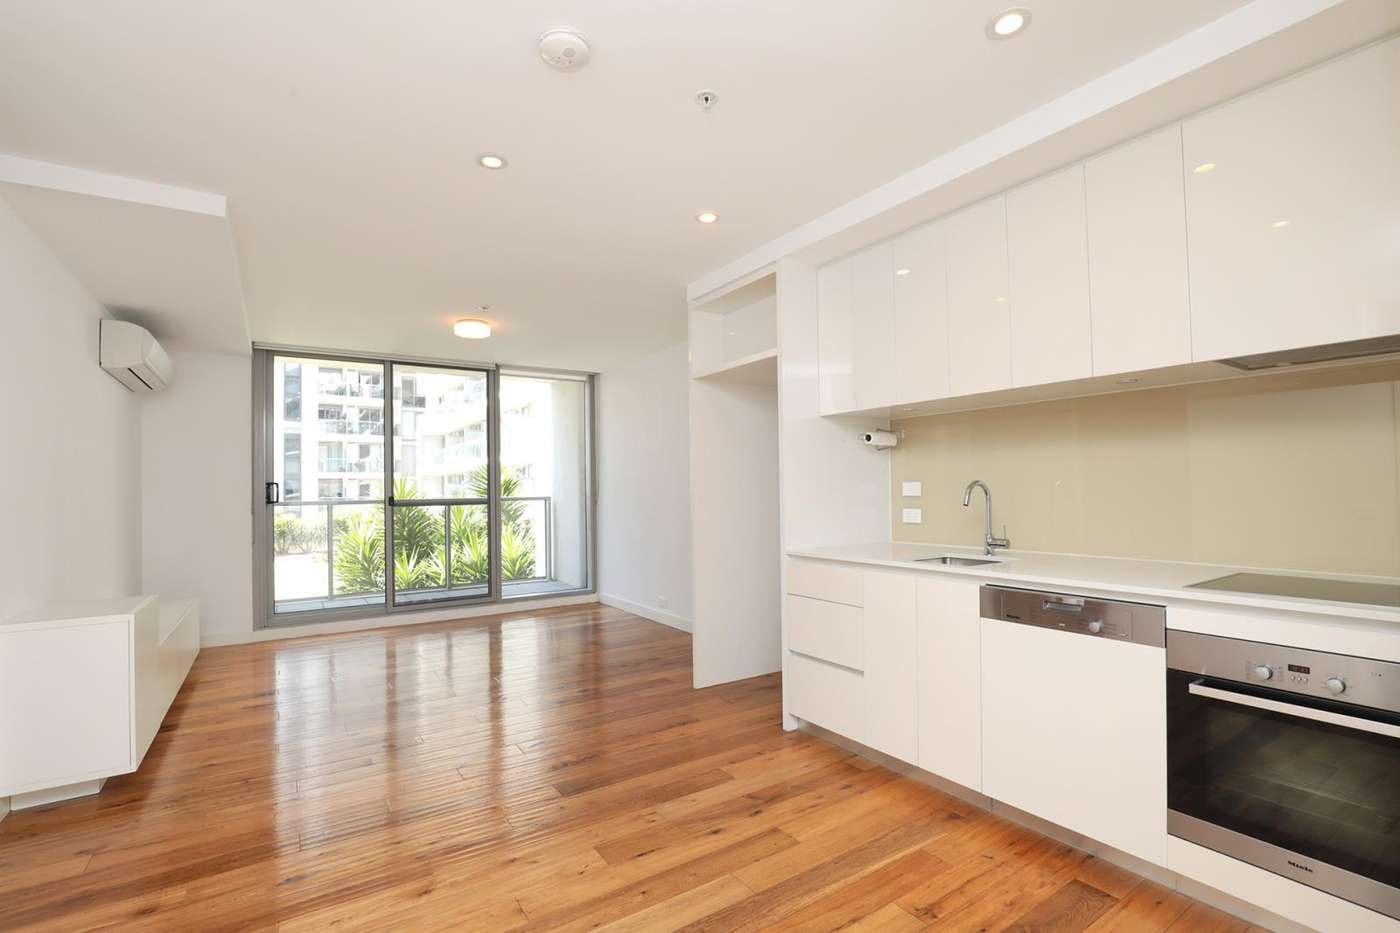 Main view of Homely apartment listing, 128/70 Nott Street, Port Melbourne, VIC 3207